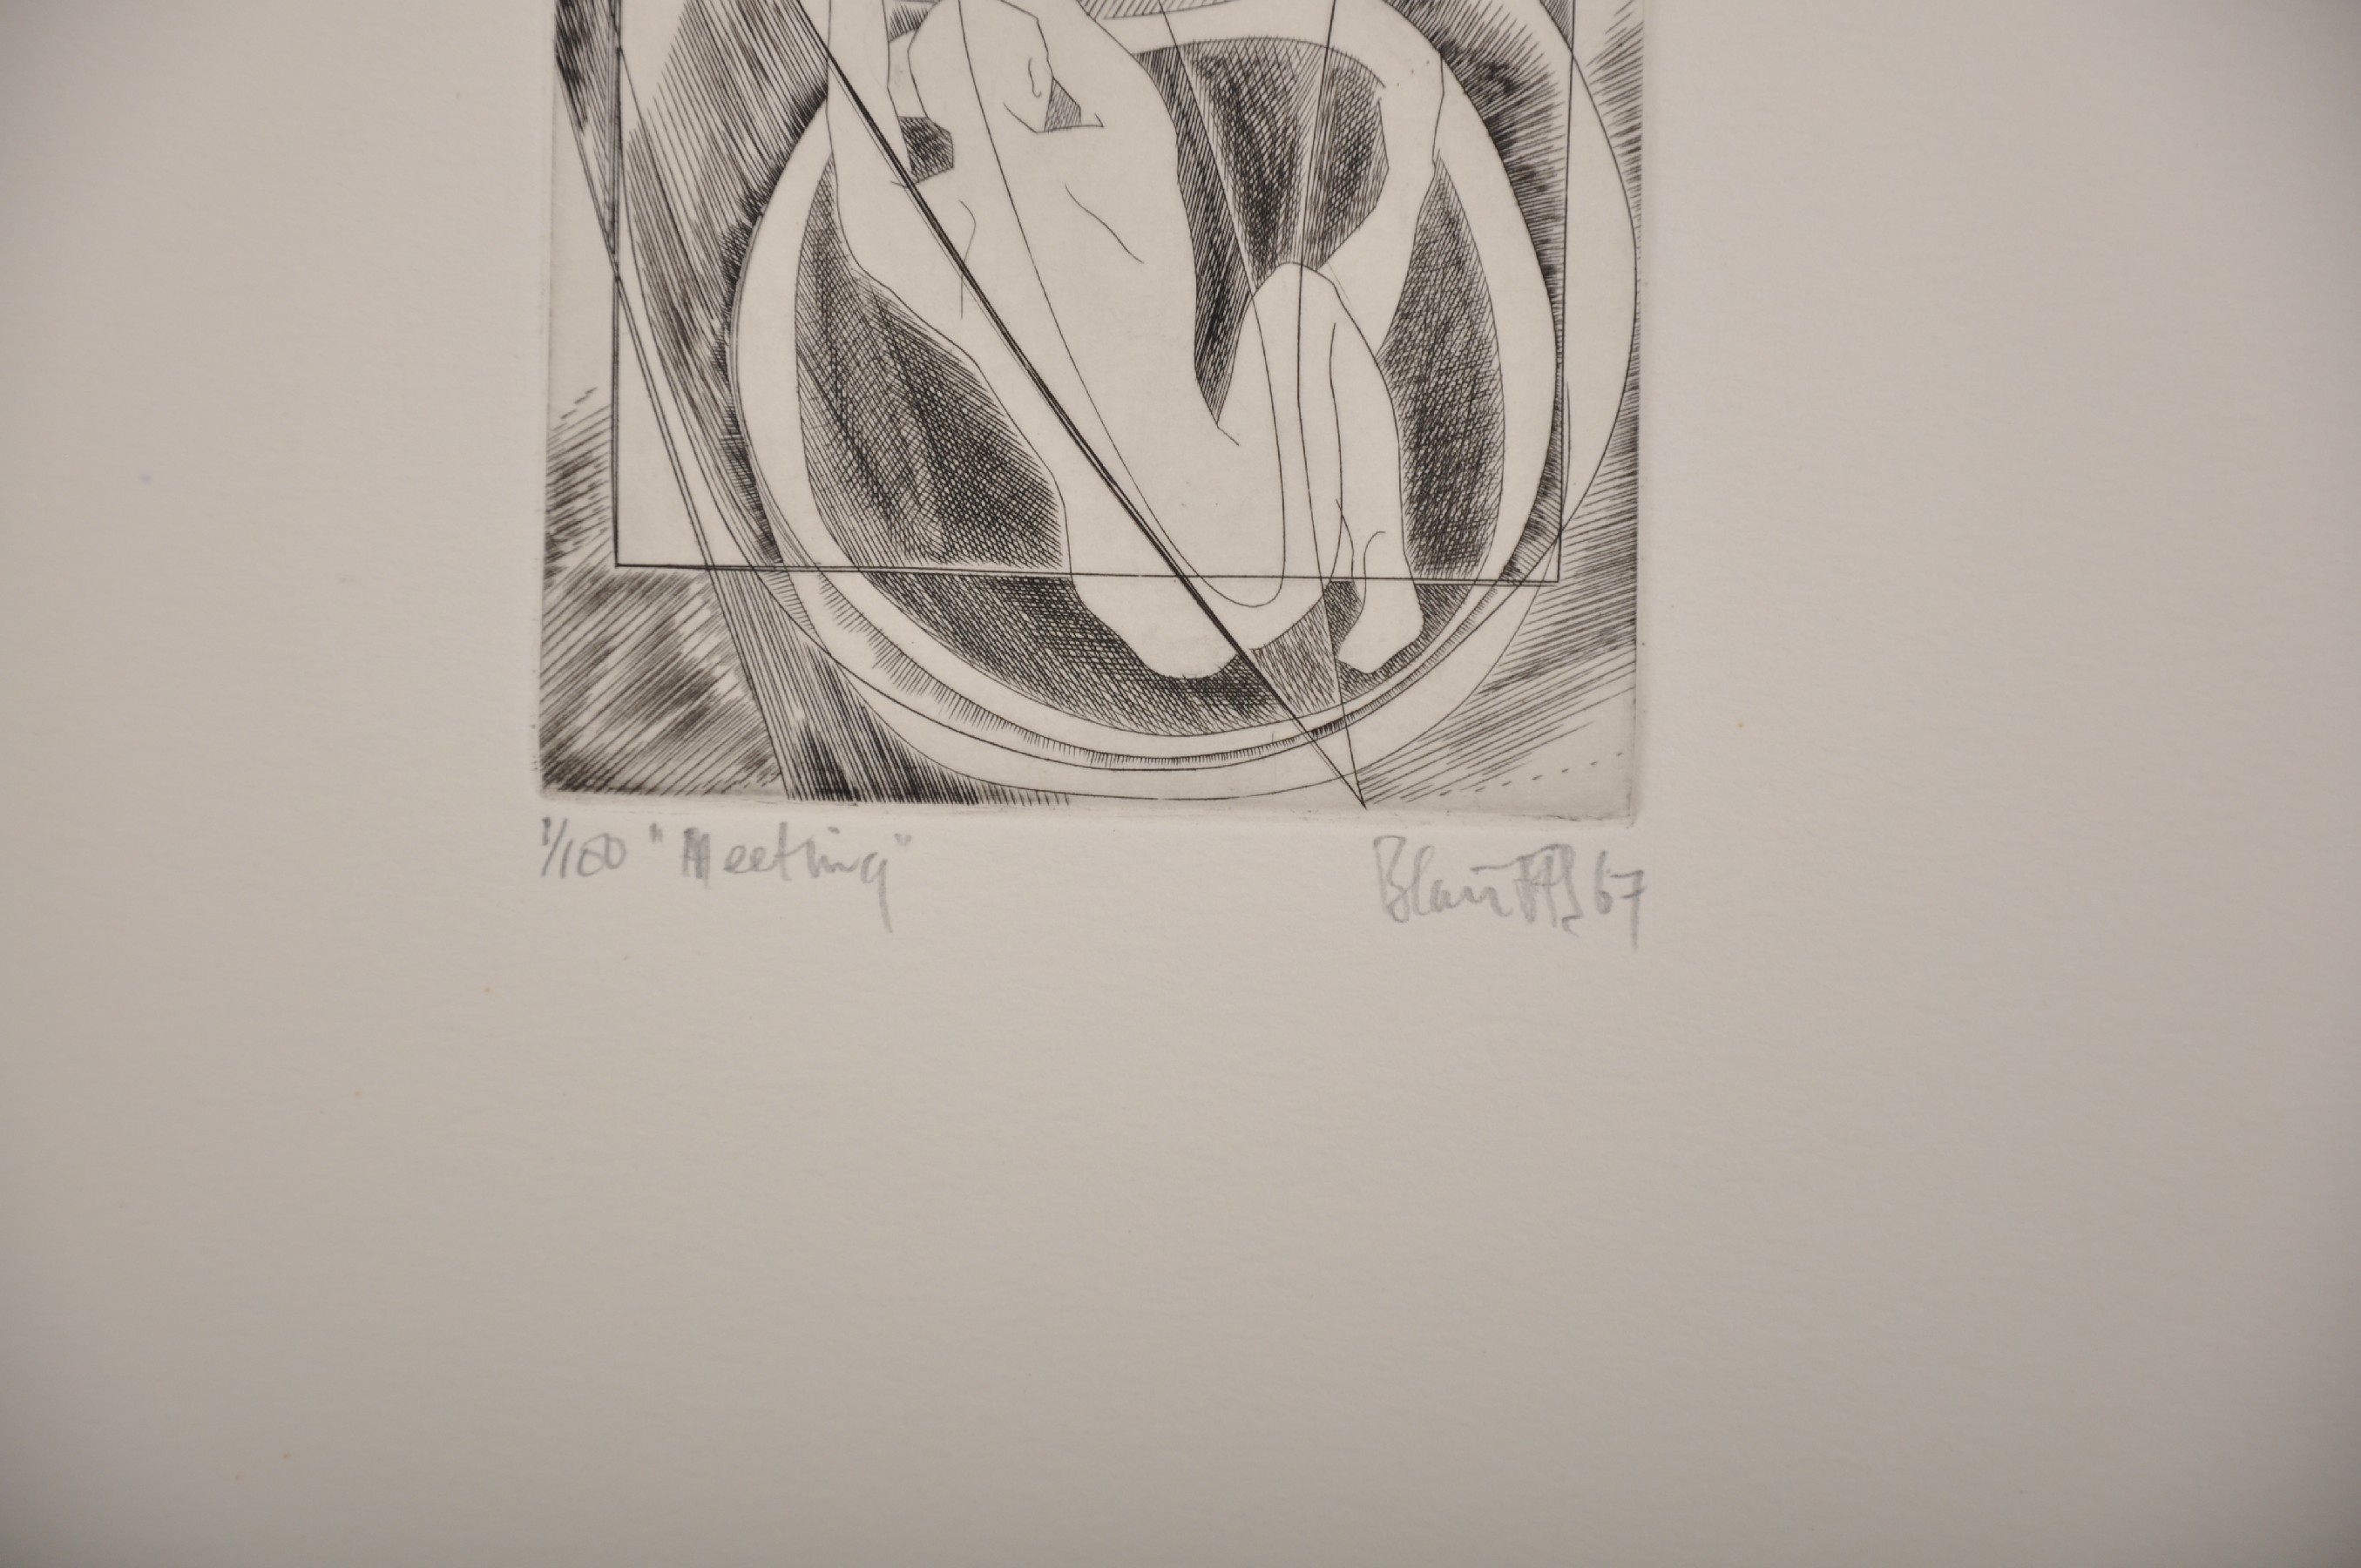 """Blair Hughes-Stanton (1902-1981) British. """"Meeting"""", Etching, Signed, Inscribed, Dated '67 and - Image 3 of 6"""